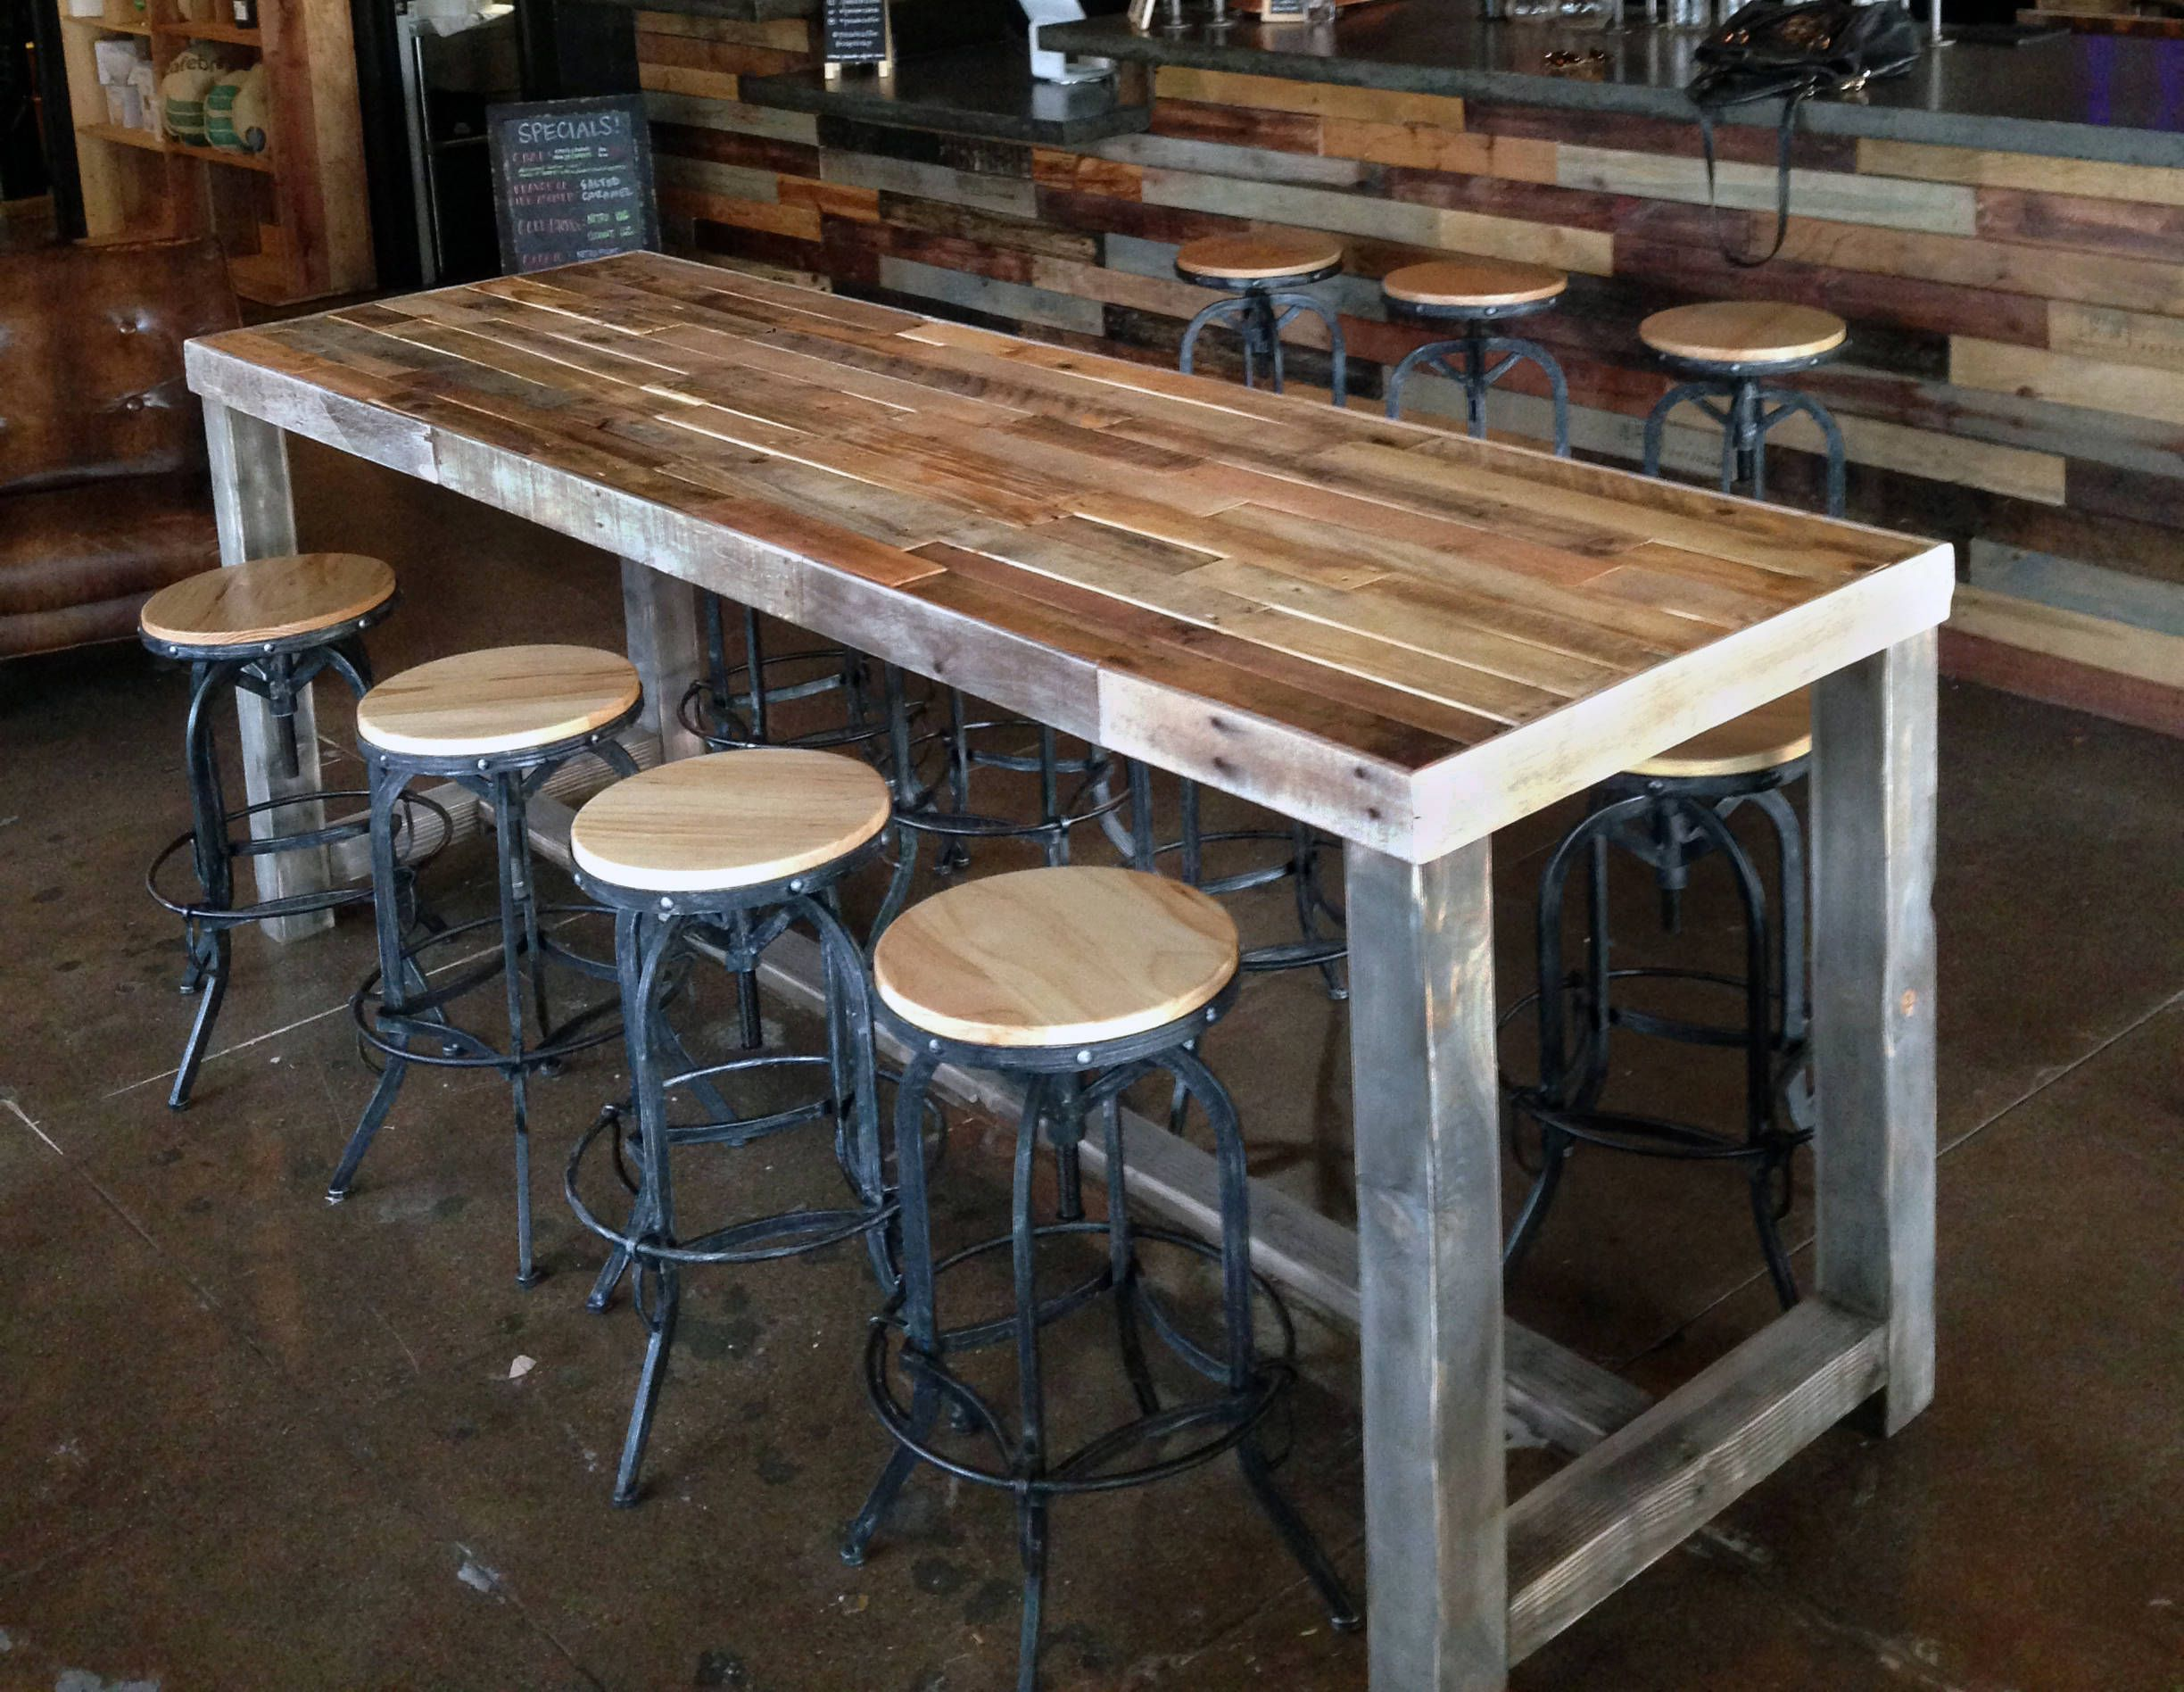 Reclaimed wood bar restaurant counter community rustic custom